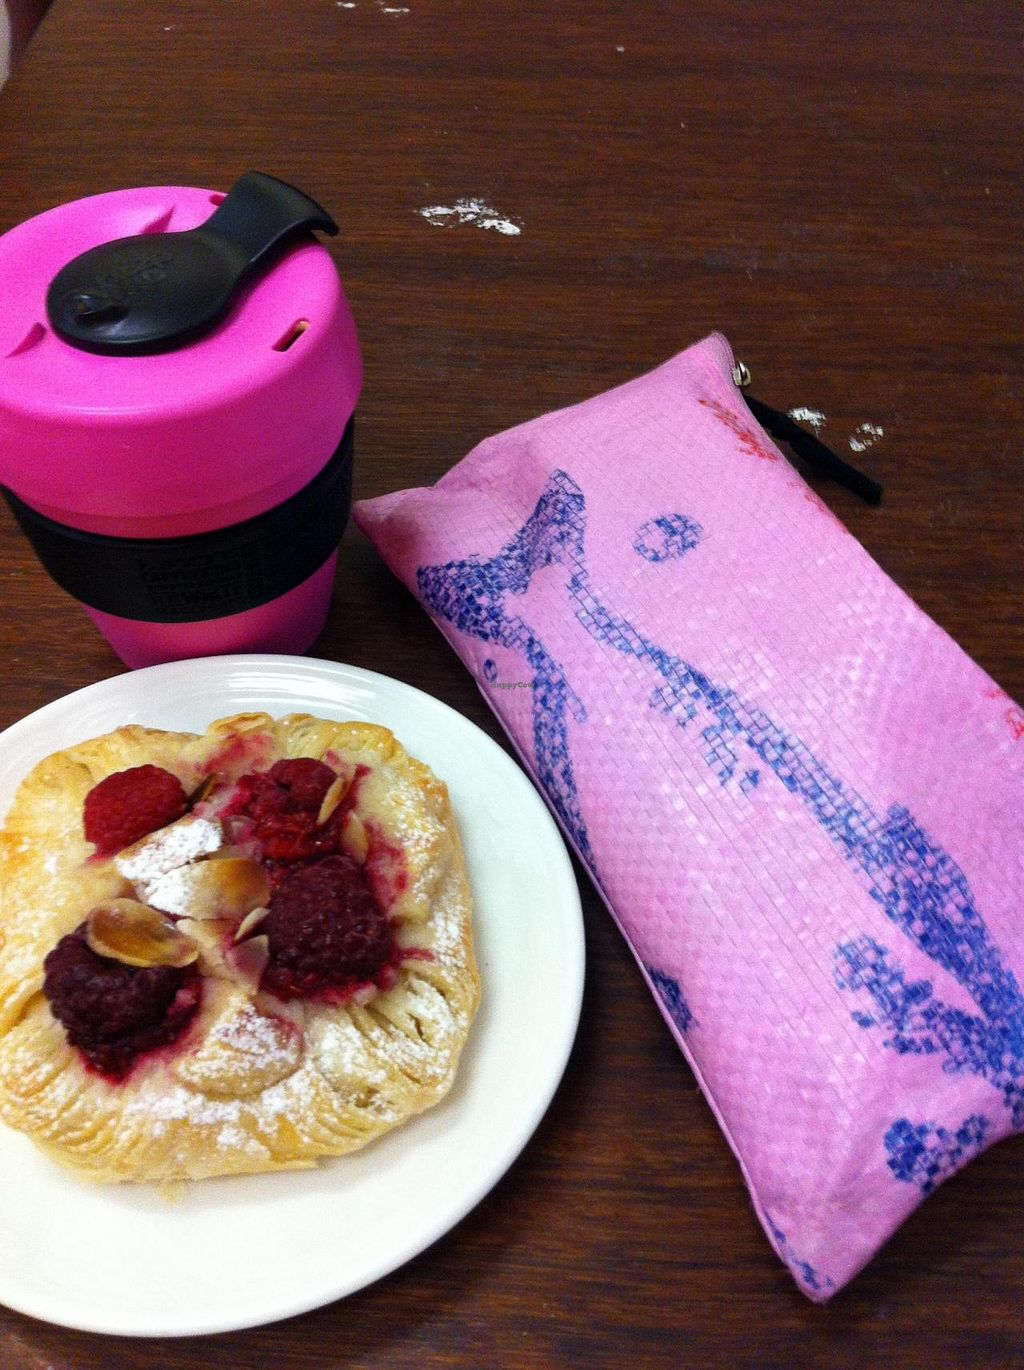 """Photo of Crumbs Organic Bakehouse  by <a href=""""/members/profile/beancurdled"""">beancurdled</a> <br/>raspberry and almond danish (with matching accessories) <br/> January 1, 2015  - <a href='/contact/abuse/image/35875/89265'>Report</a>"""